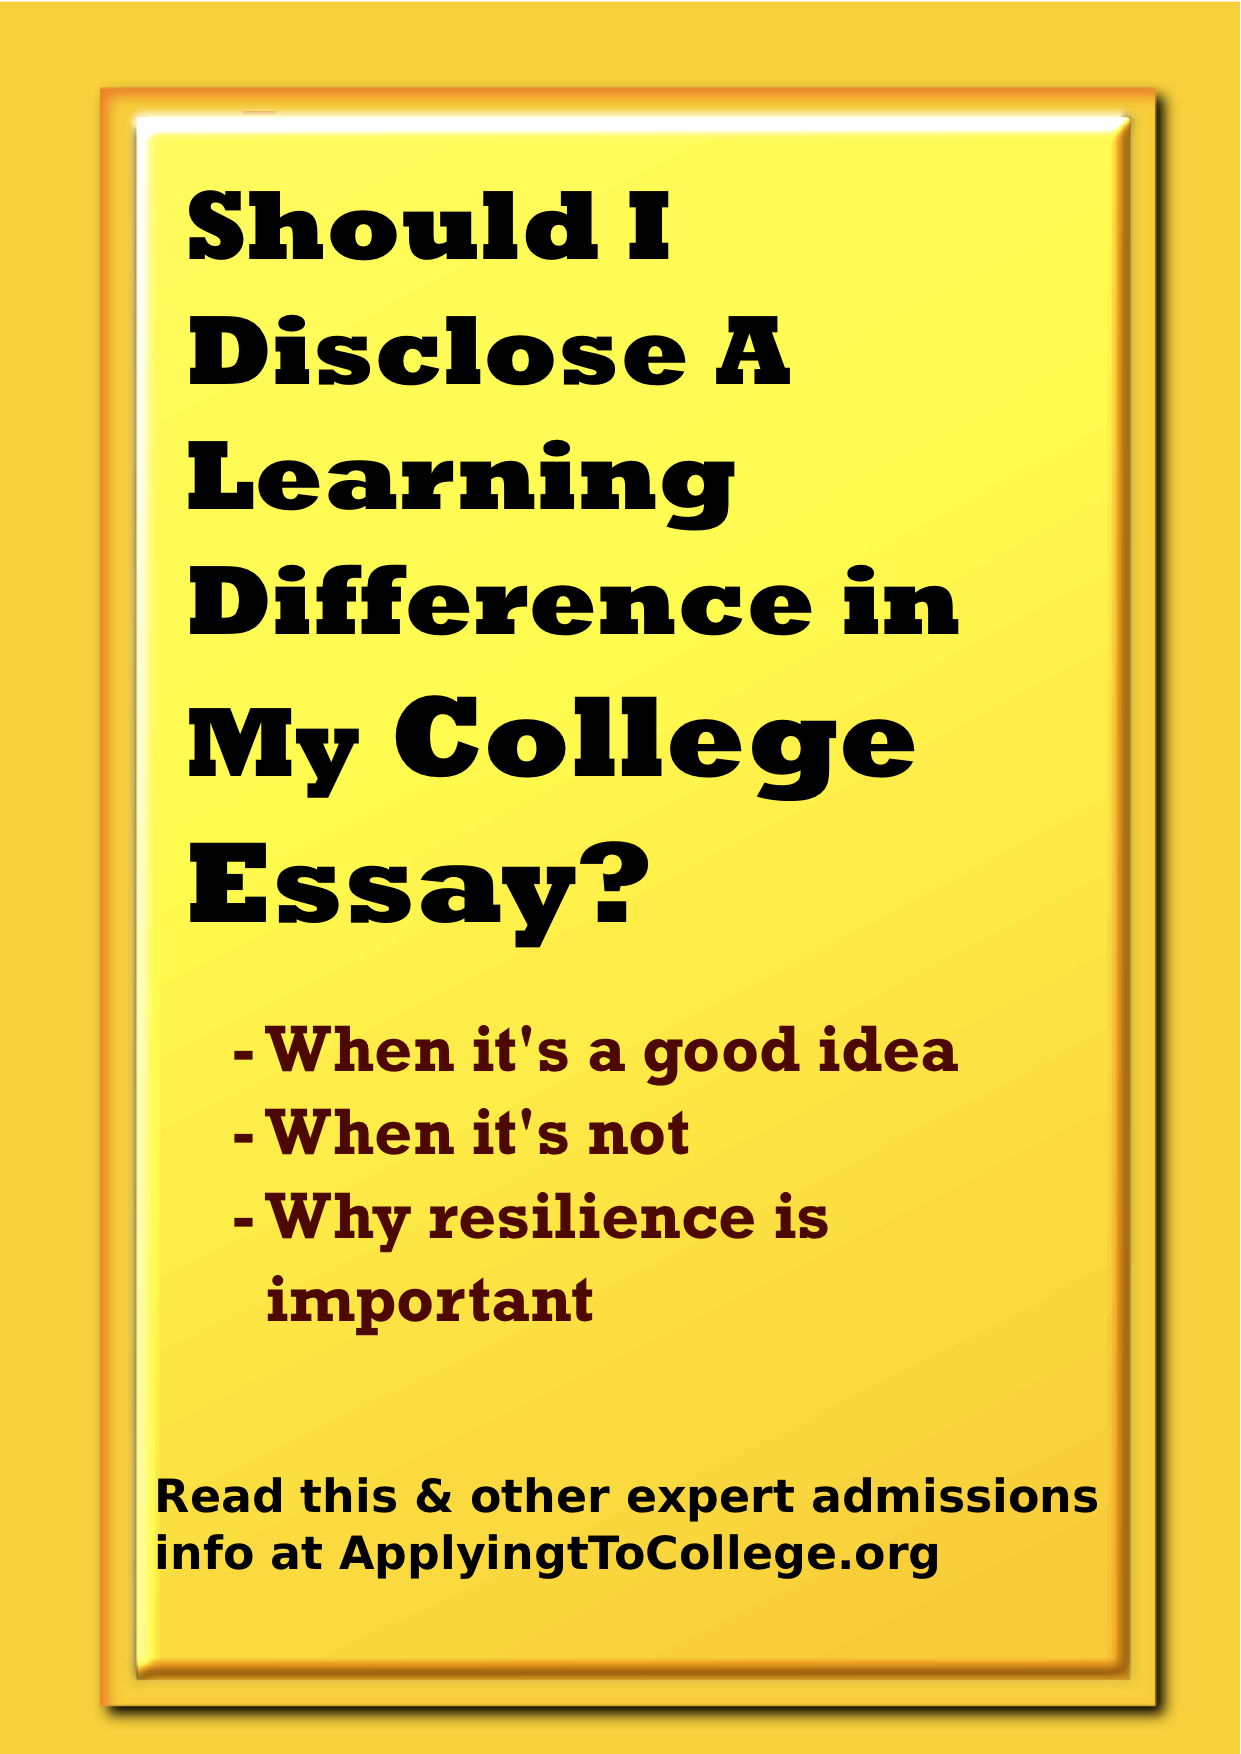 should i write about my eating disorder in college essays Unlike the essays you've been writing in school where the idea is to analyze something outside of yourself, the main subject of your college essay should be you, your background, your makeup, and your future writing about someone or something else might well make a great essay, but not for this context.